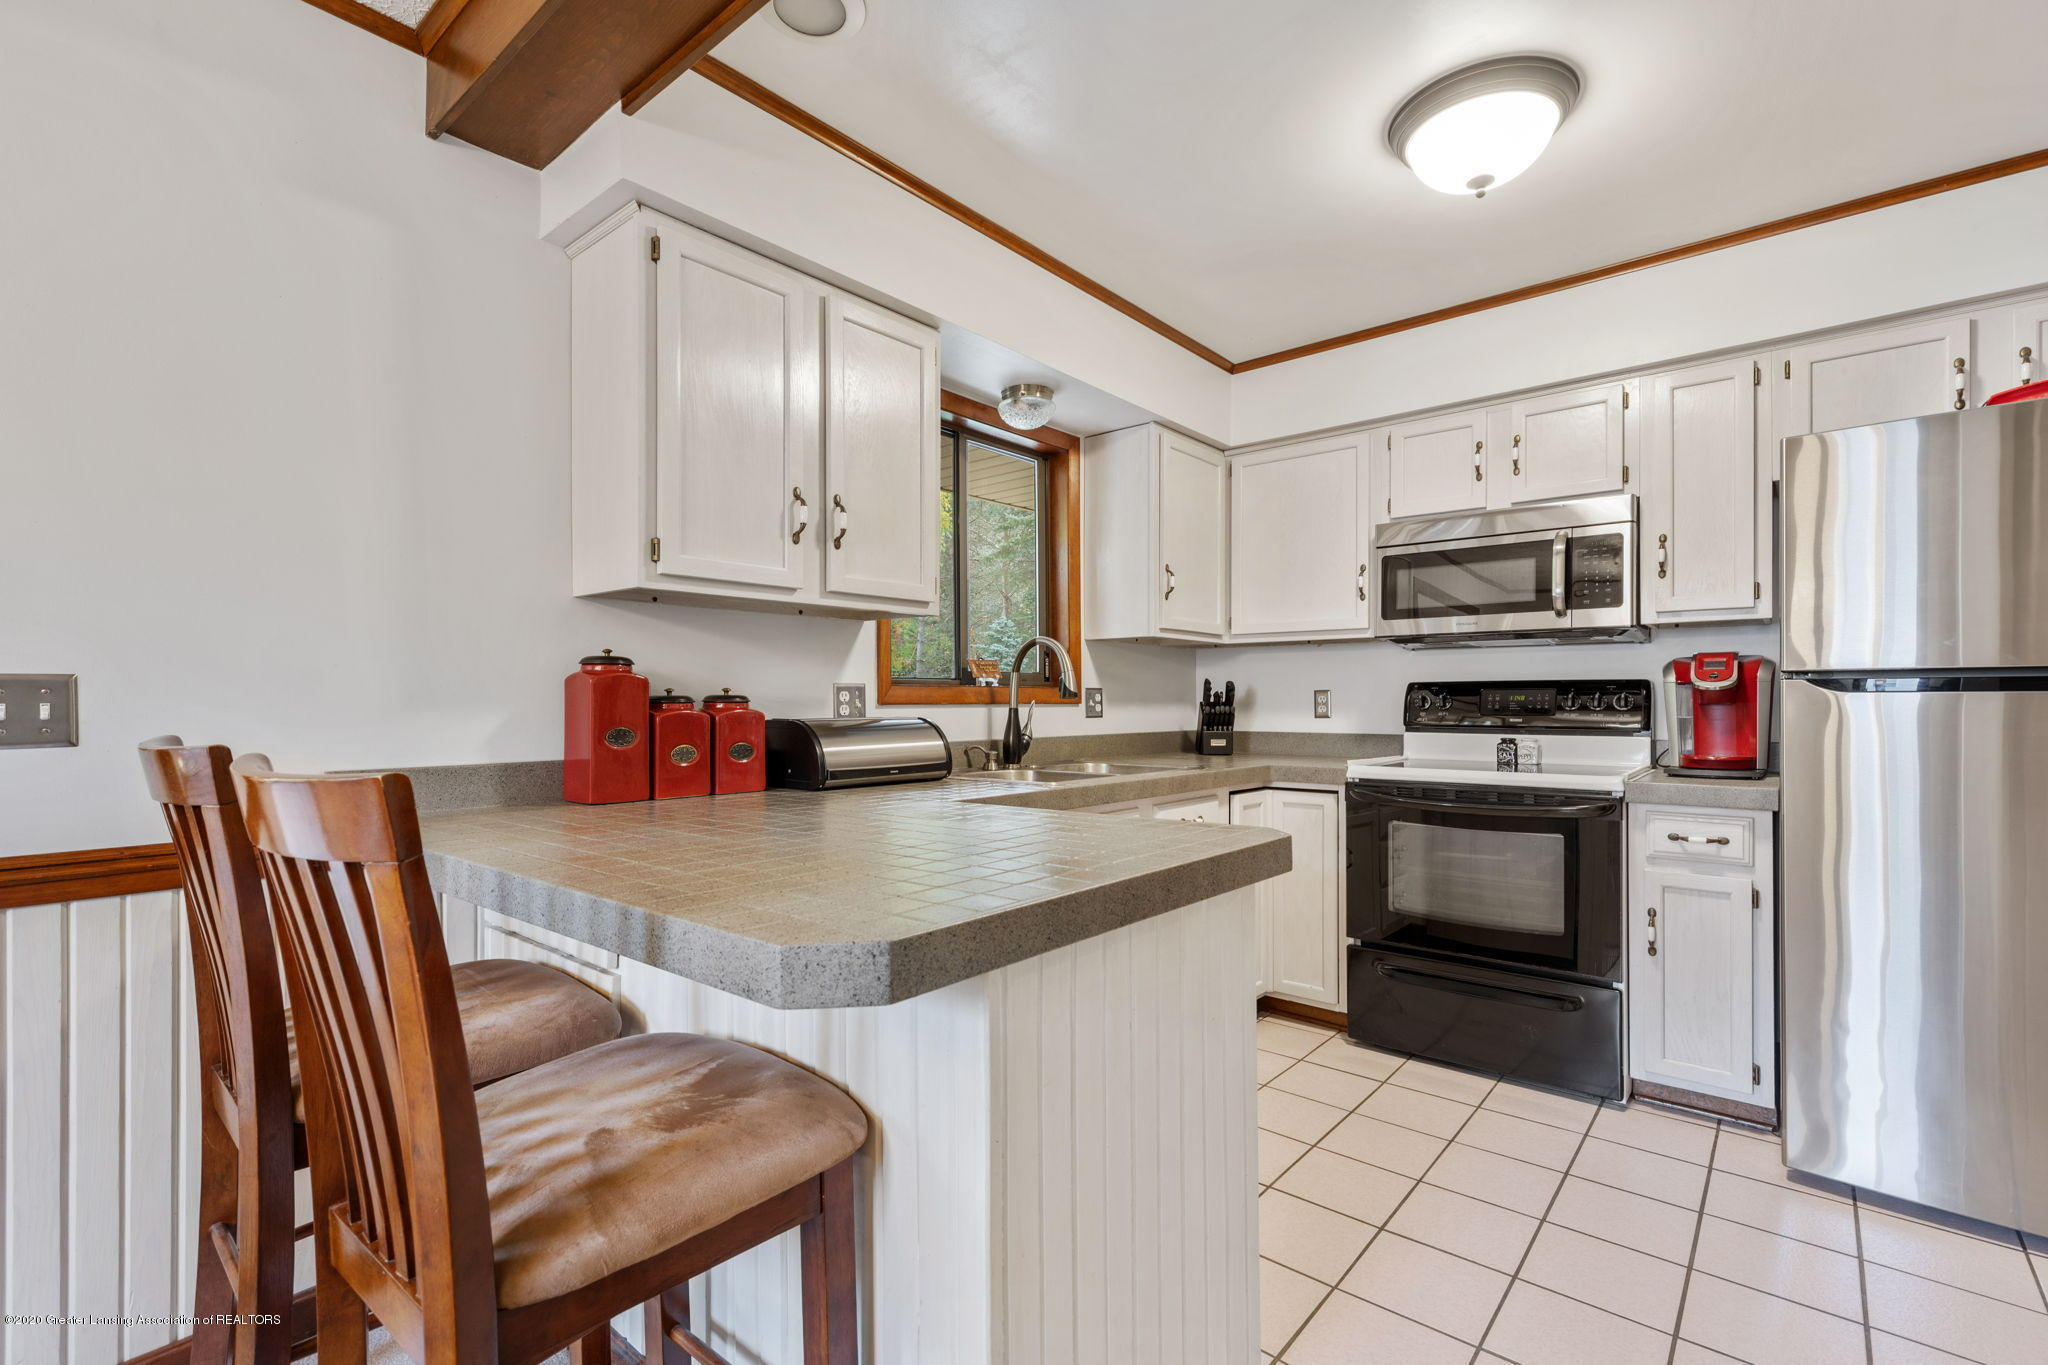 617 Green St - 31-web-or-mls-1P6A9493 - 14